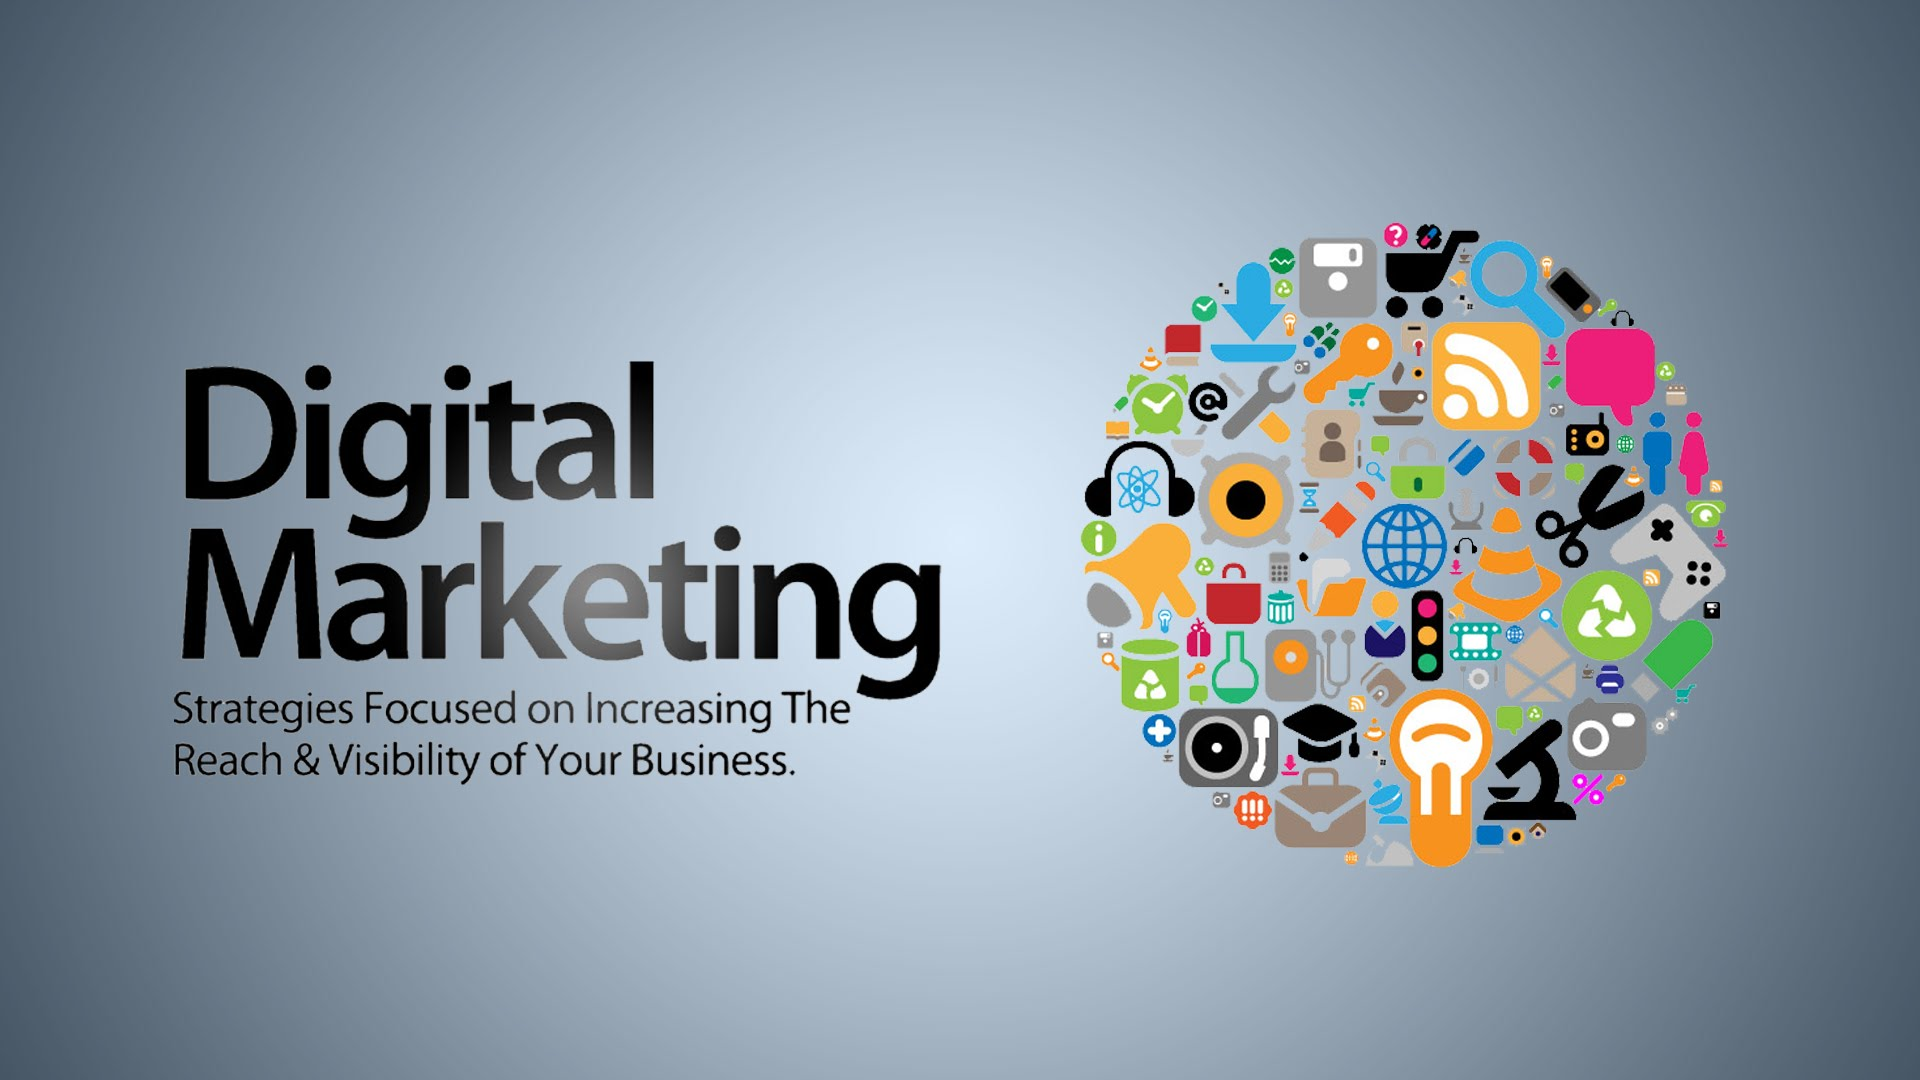 Digital Marketing services